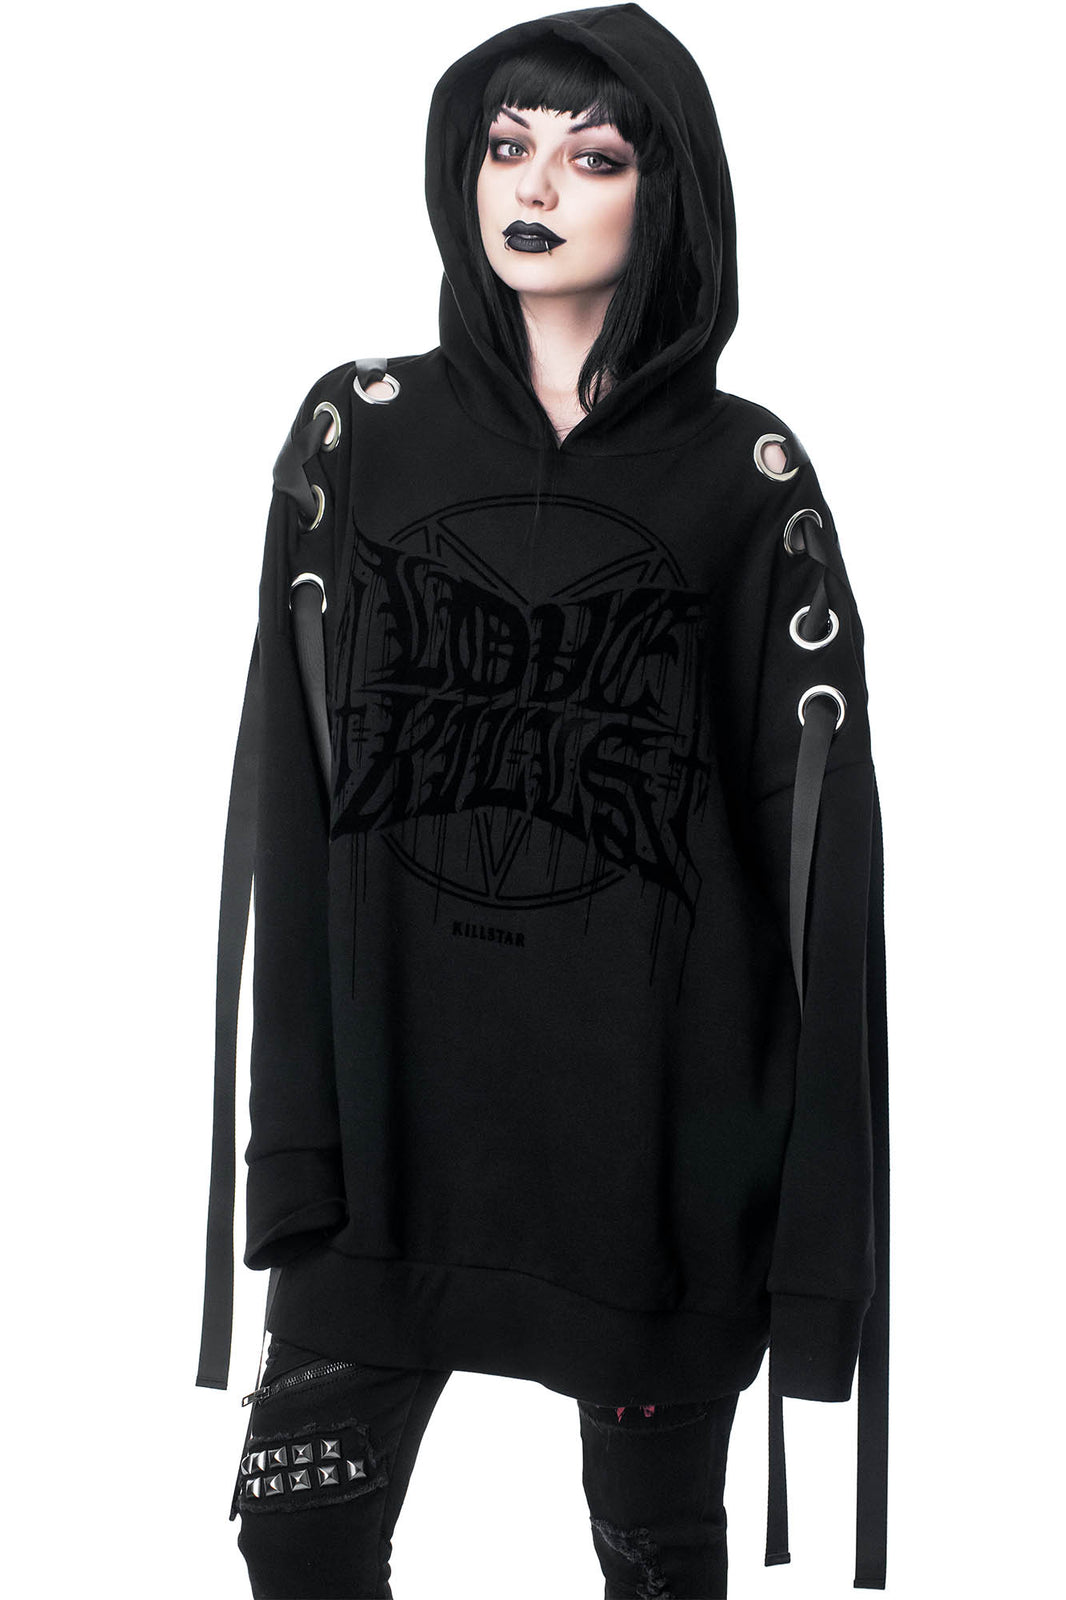 Other Worlds Oversized Hoodie